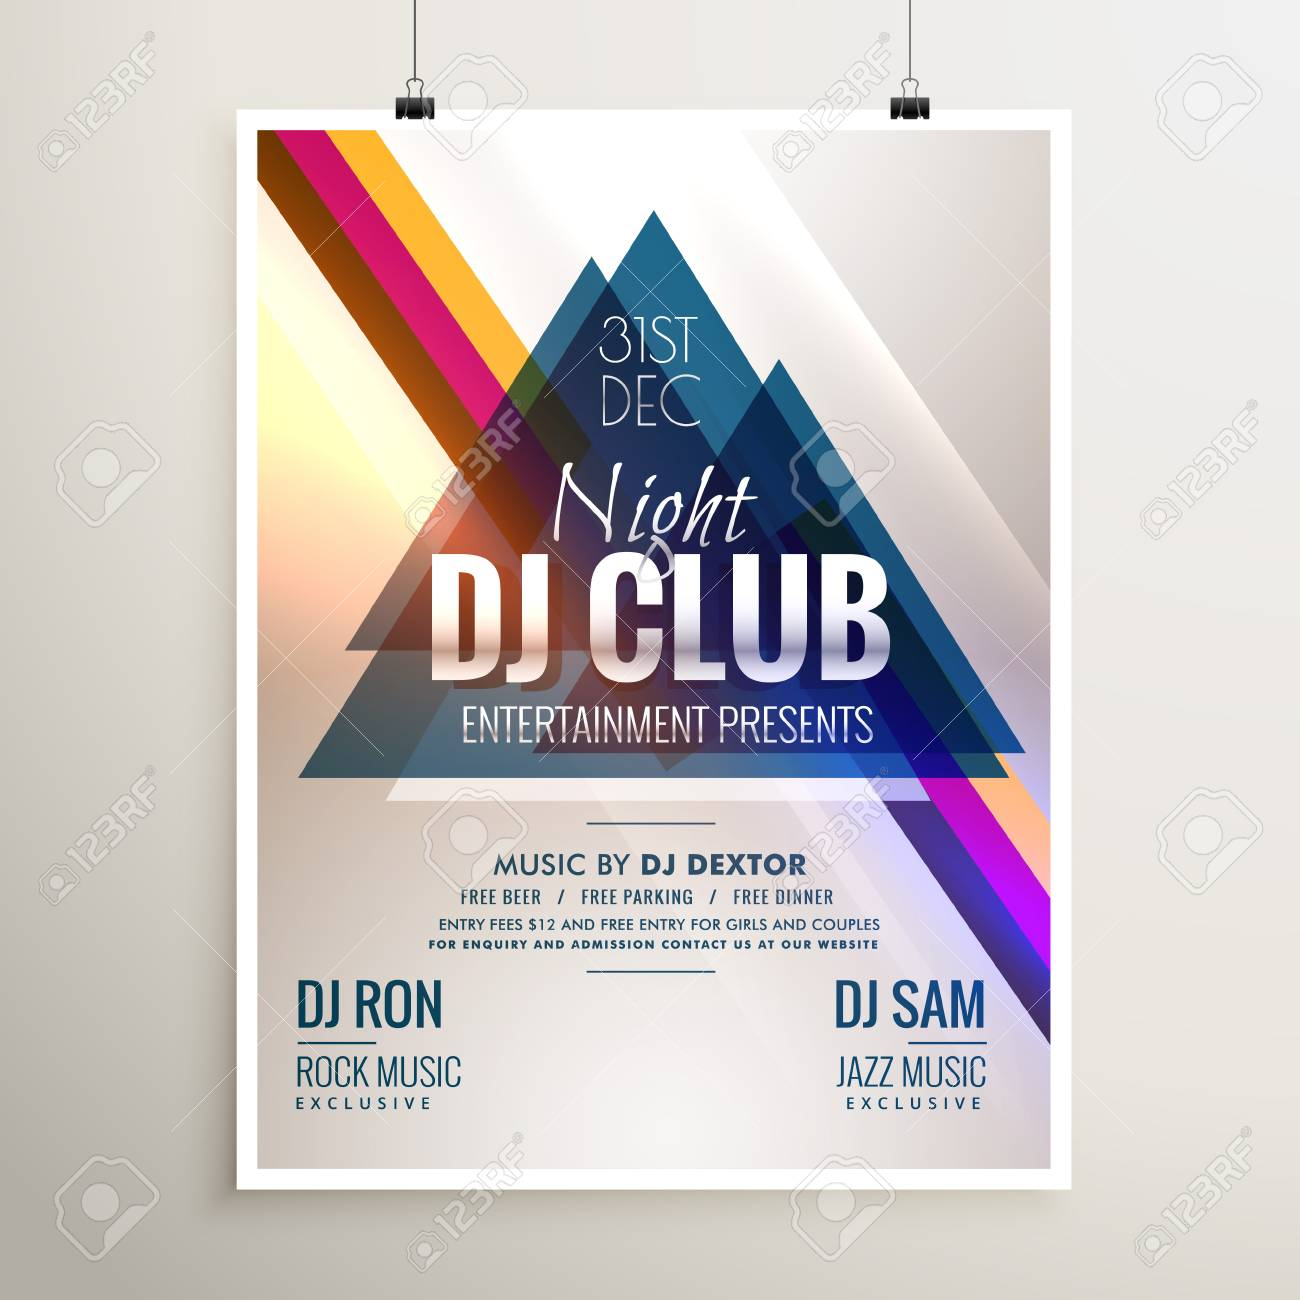 Creative Club Music Party Event Flyer Template With Abstract Royalty Free Cliparts Vectors And Stock Illustration Image 66227746